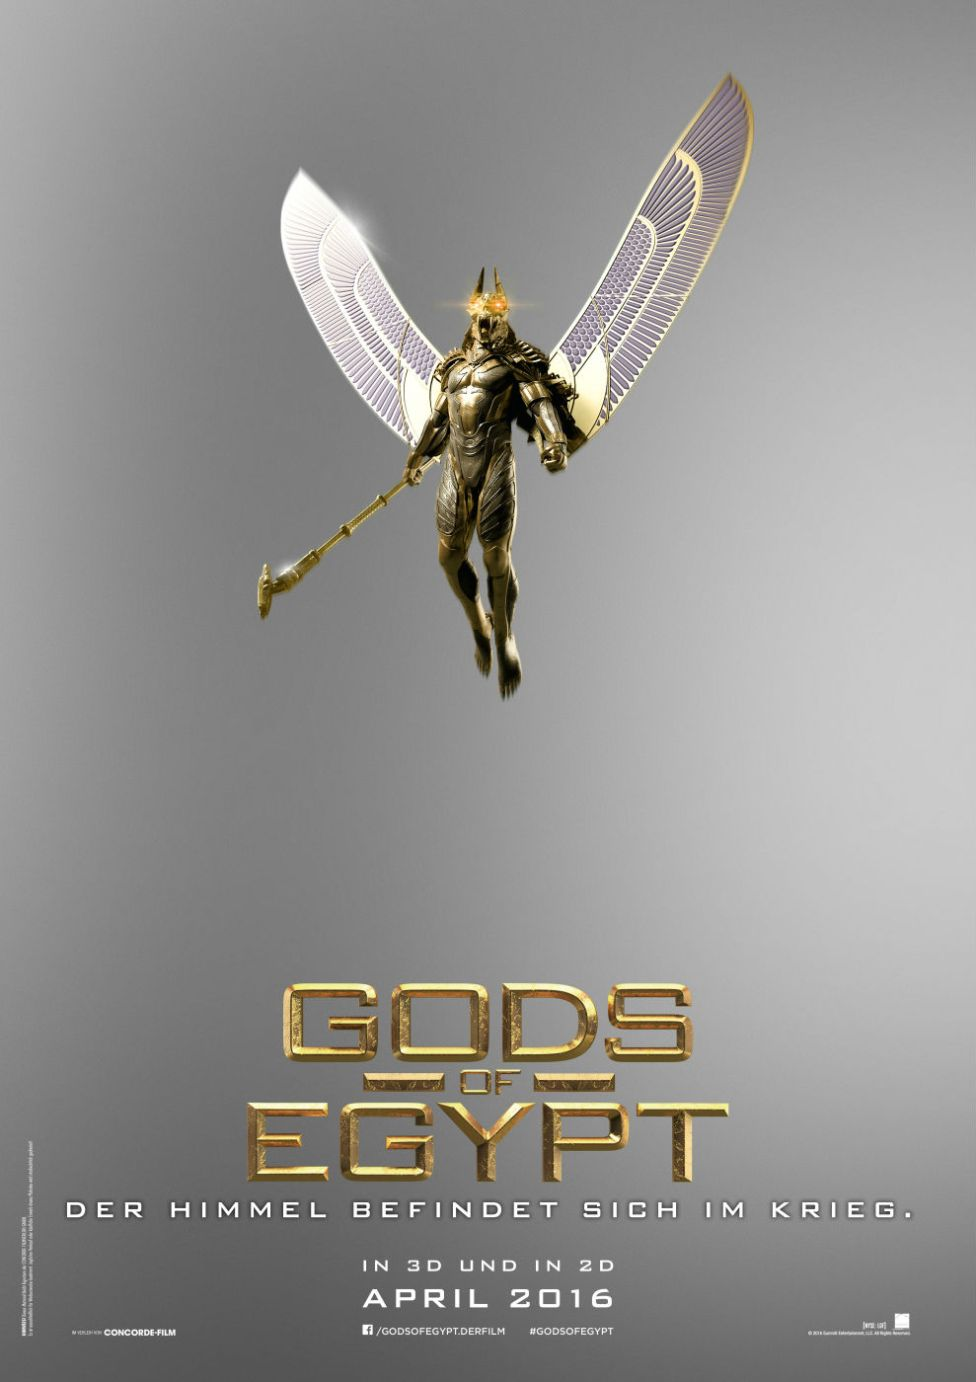 Gods-of-Eagypt-3D-deutsches-poster-2